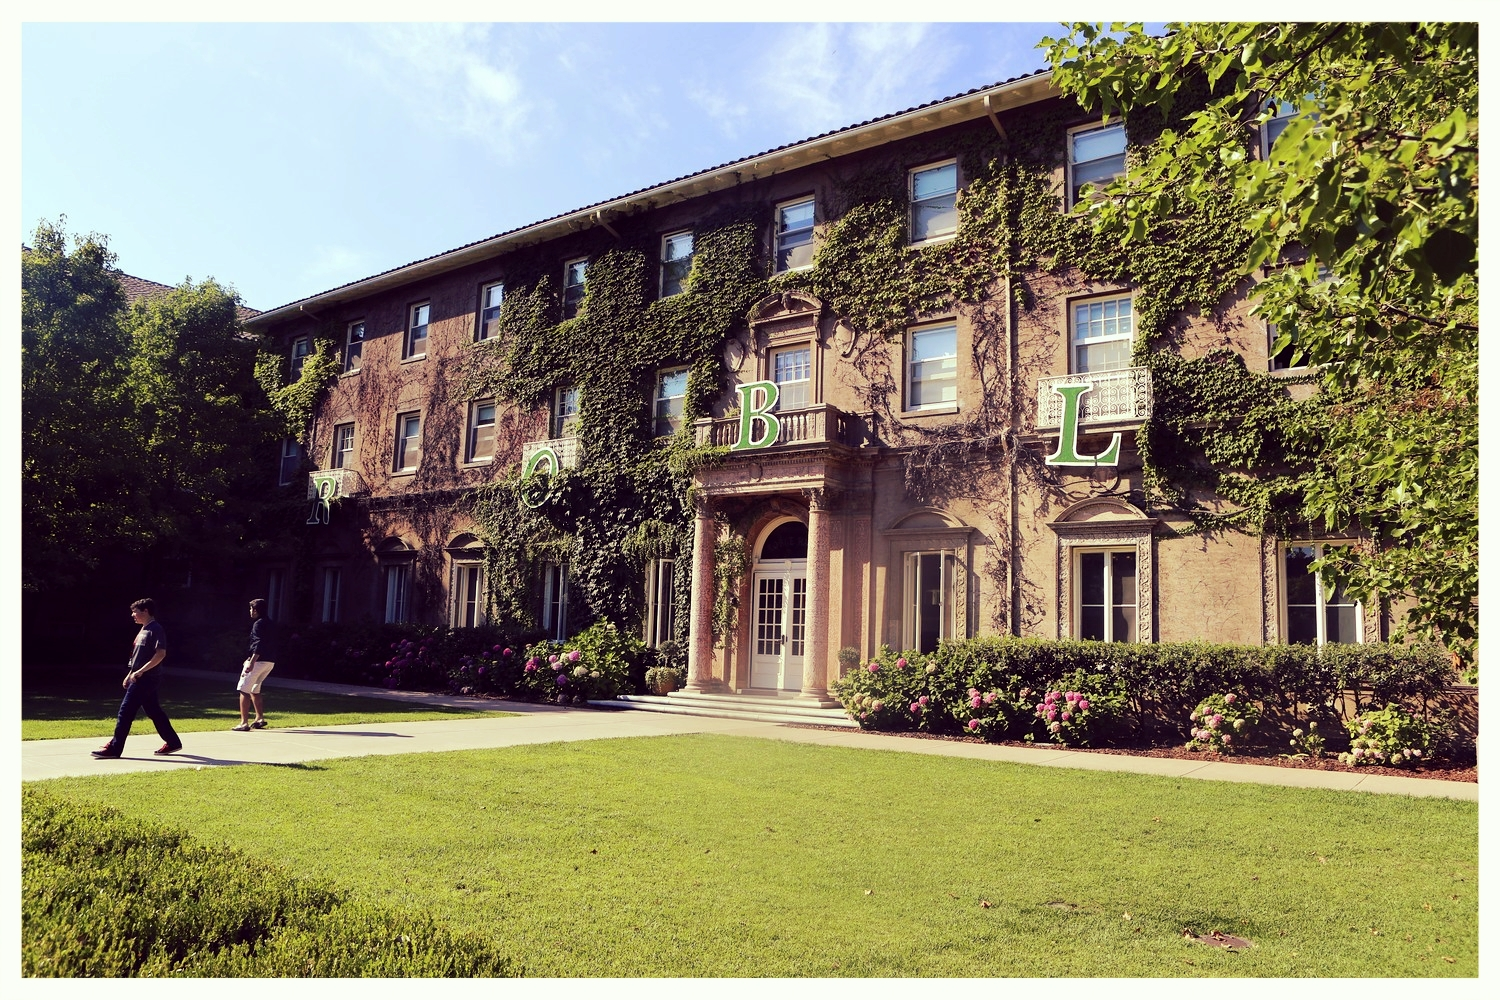 Robles Hall, Harrison's Stanford dormitory for a month